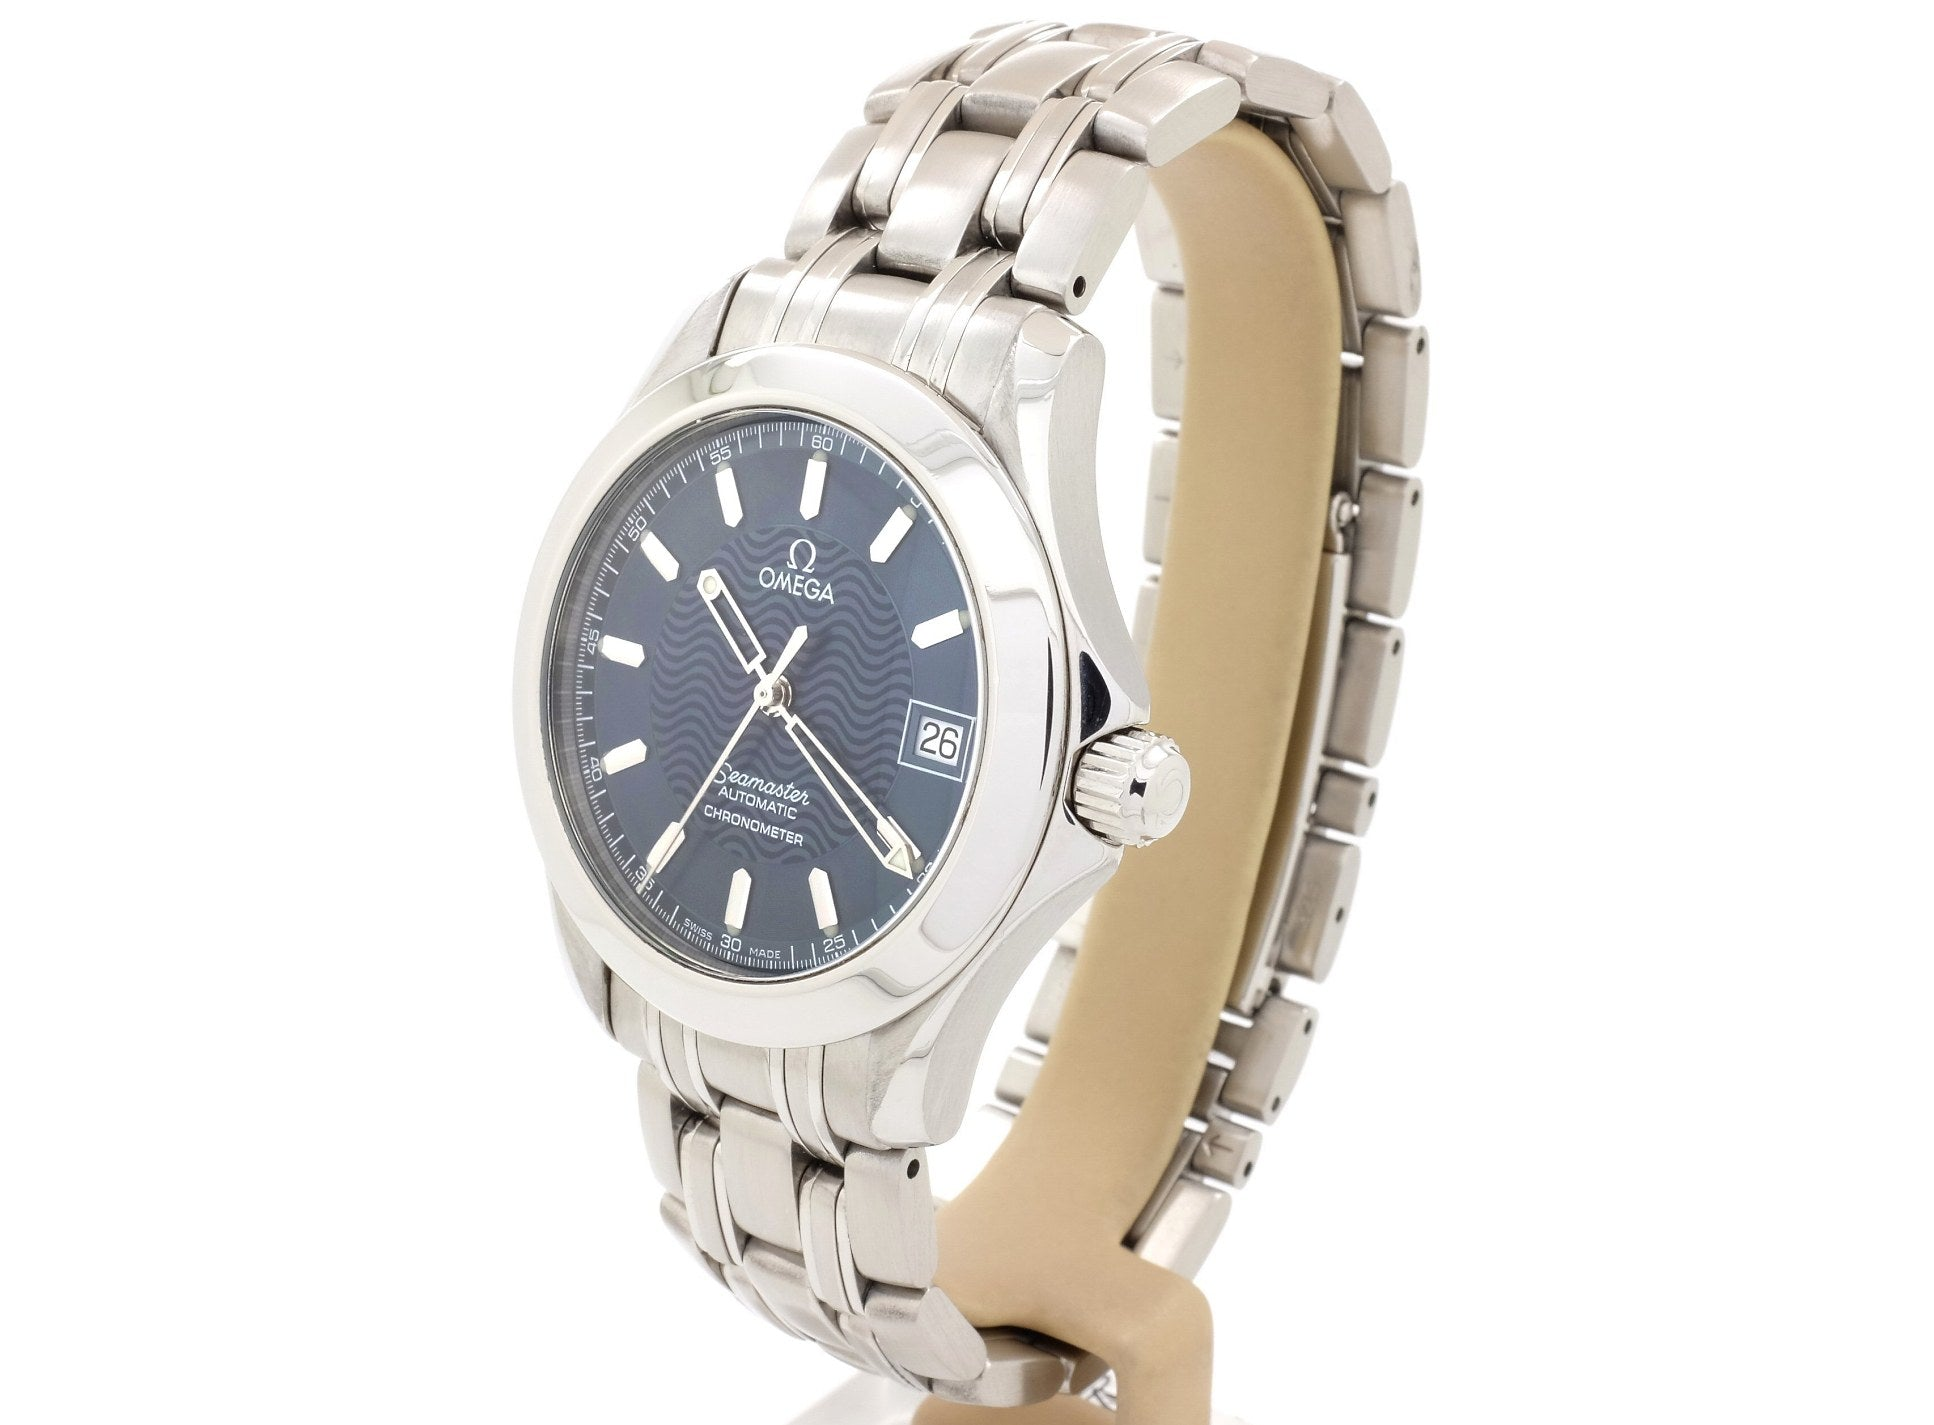 Affordable 36mm Omega SEAMASTER Model 25018100